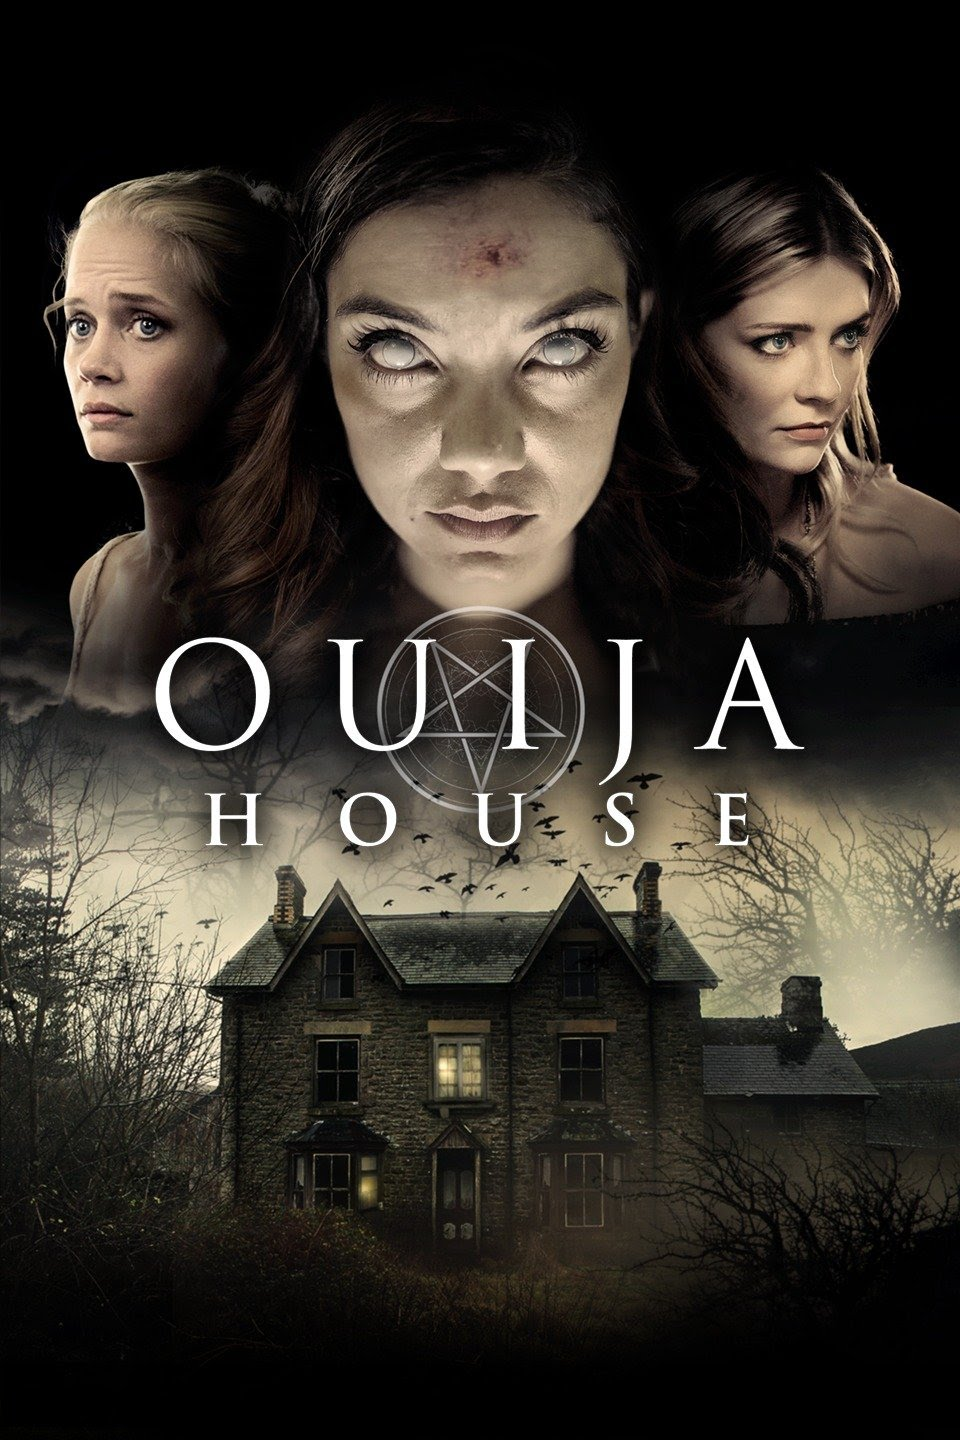 Ouija House 2018 Dual Audio 480p |720p HDRip [Hindi ORG + English] 300MB | 900MB Download